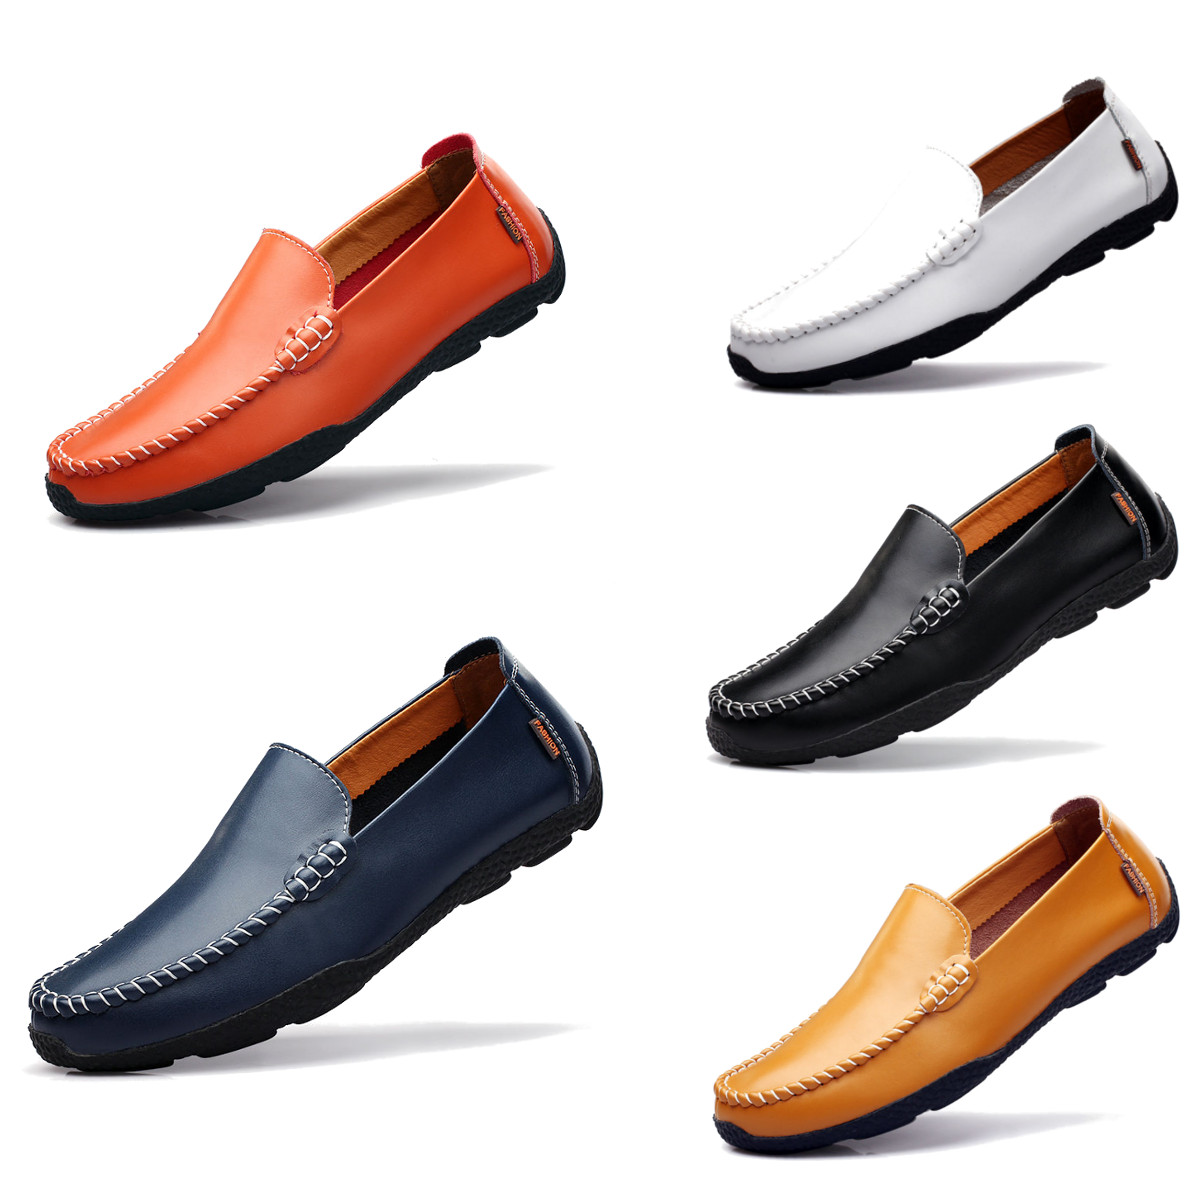 New Mens Driving Casual Boat Shoes Leather Moccasin Slip On D Island Mocasine Brown Detail Image